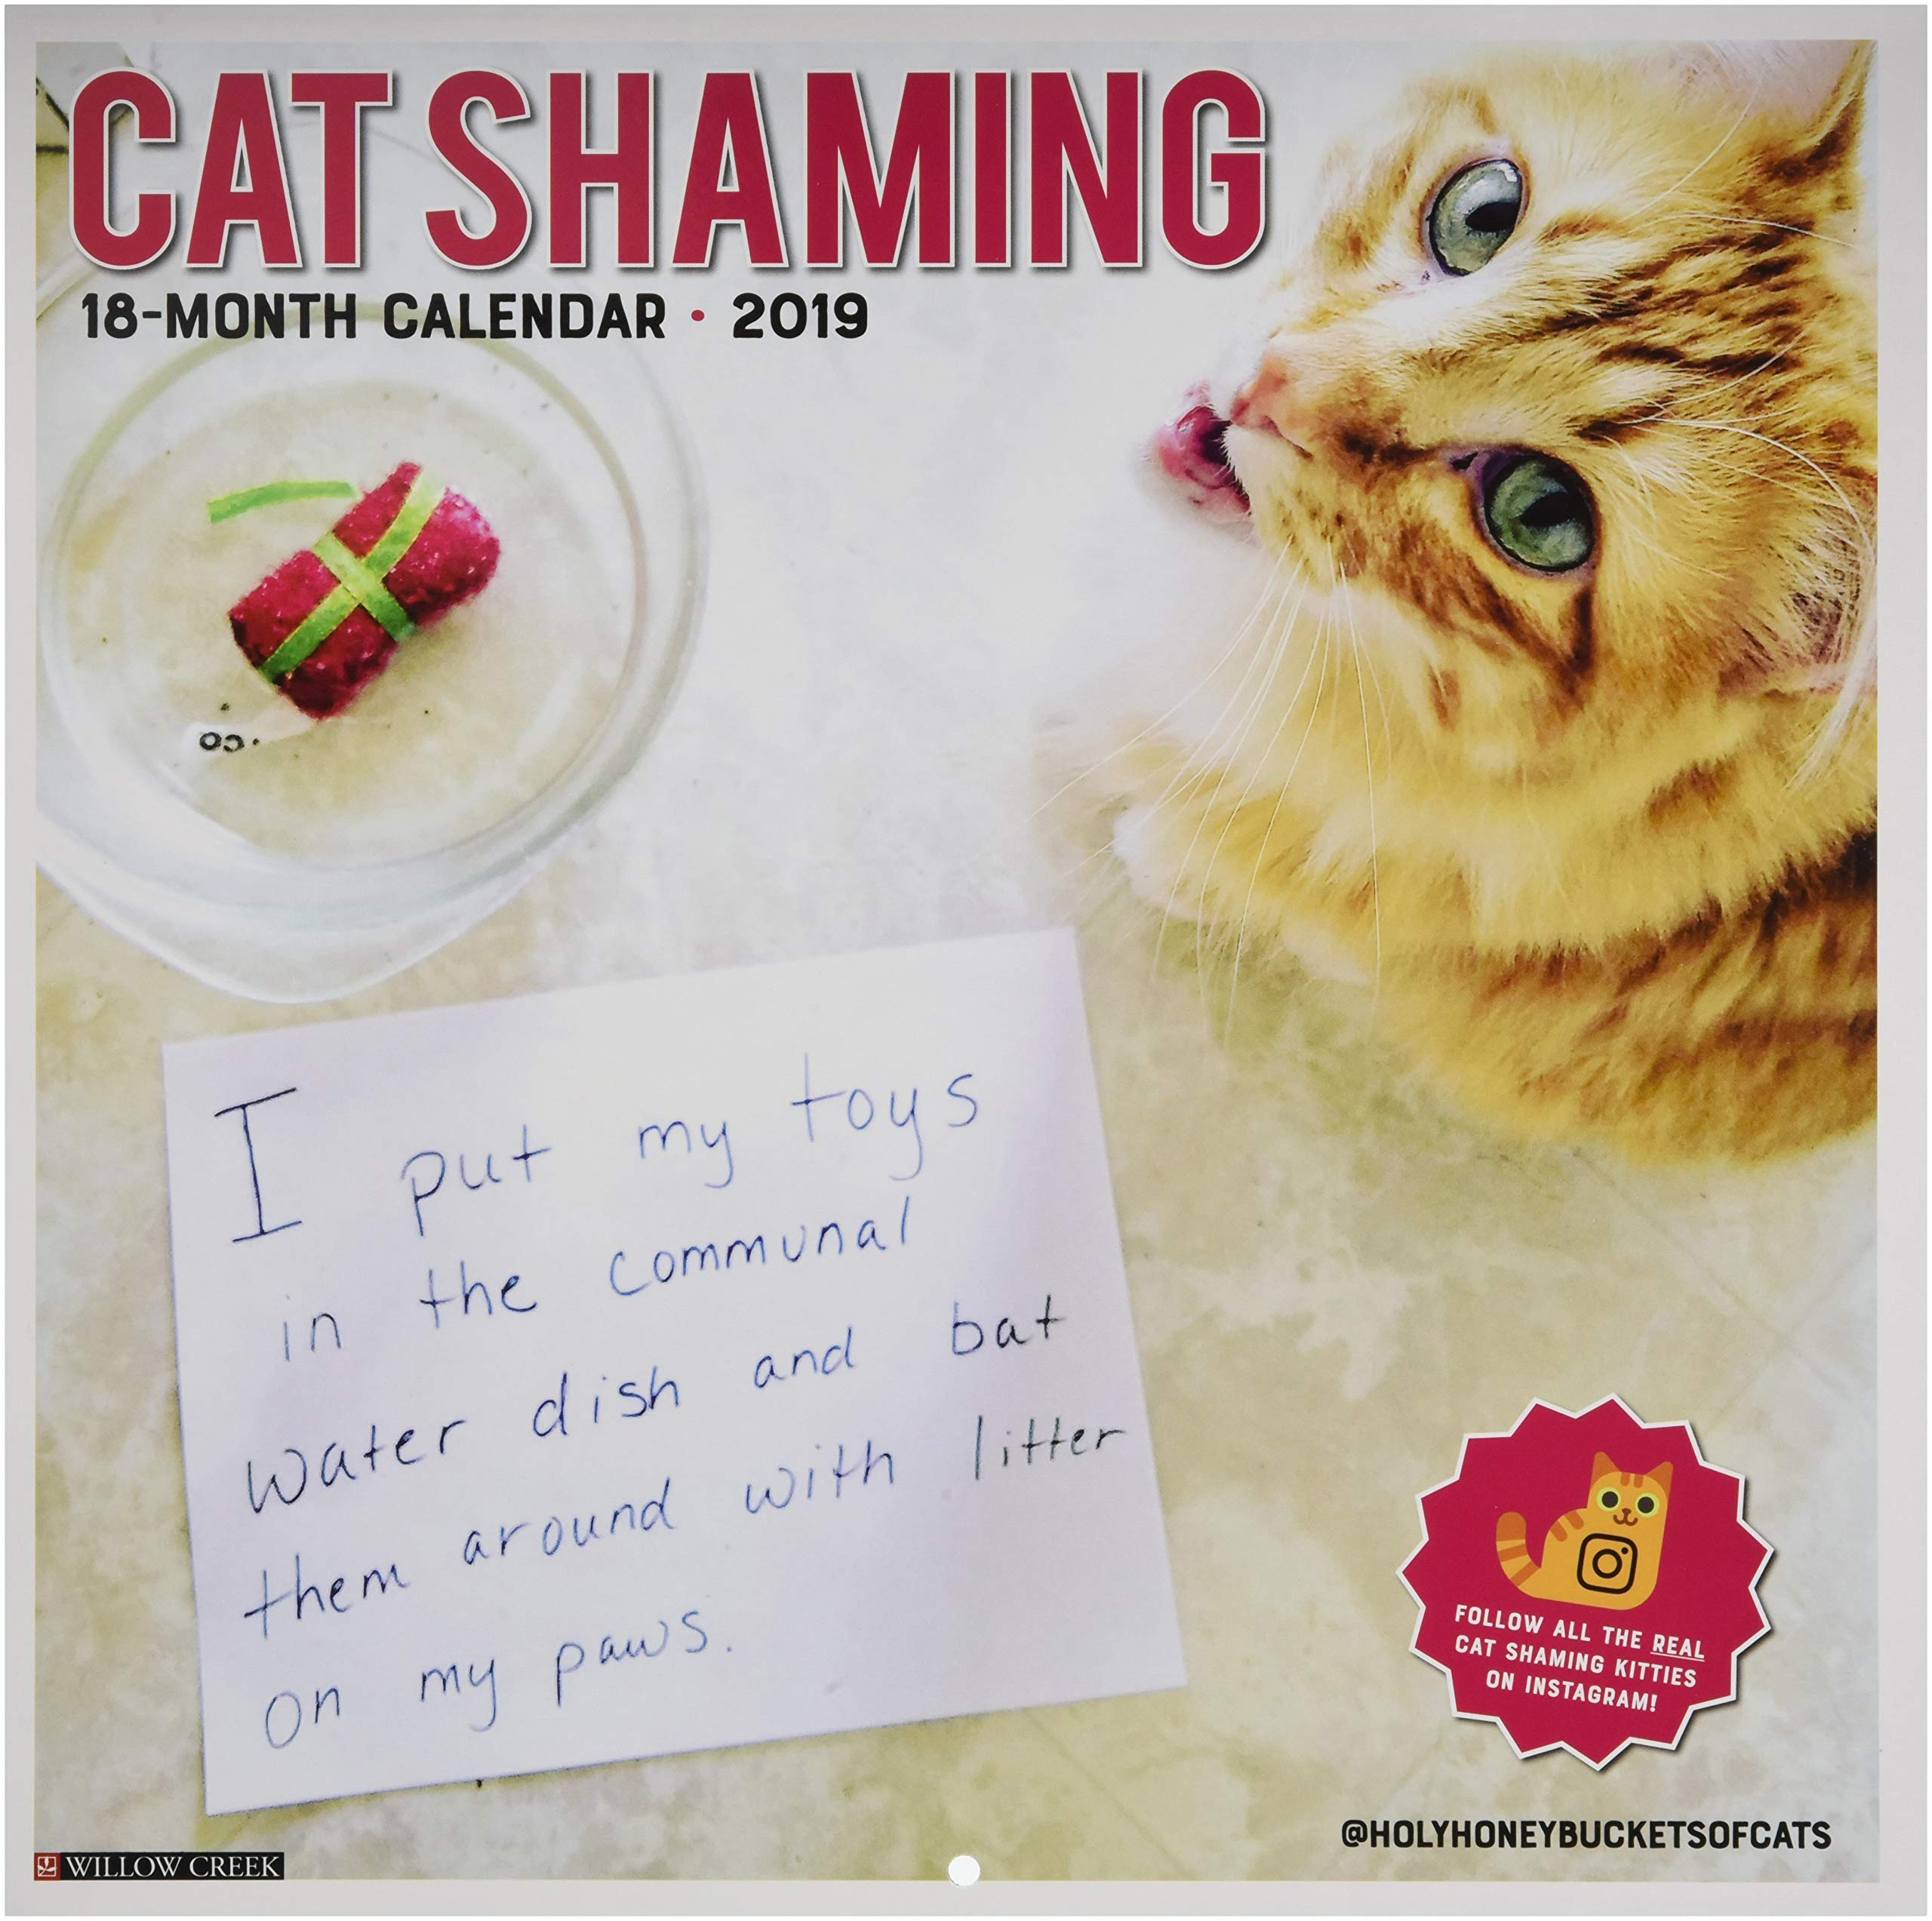 Cat Shaming 2019 Wall Calendar Calendar – Wall Calendar, July 15, 2018 Willow Creek Press 1549200658 Calendars HUMOR / Topic / Animals